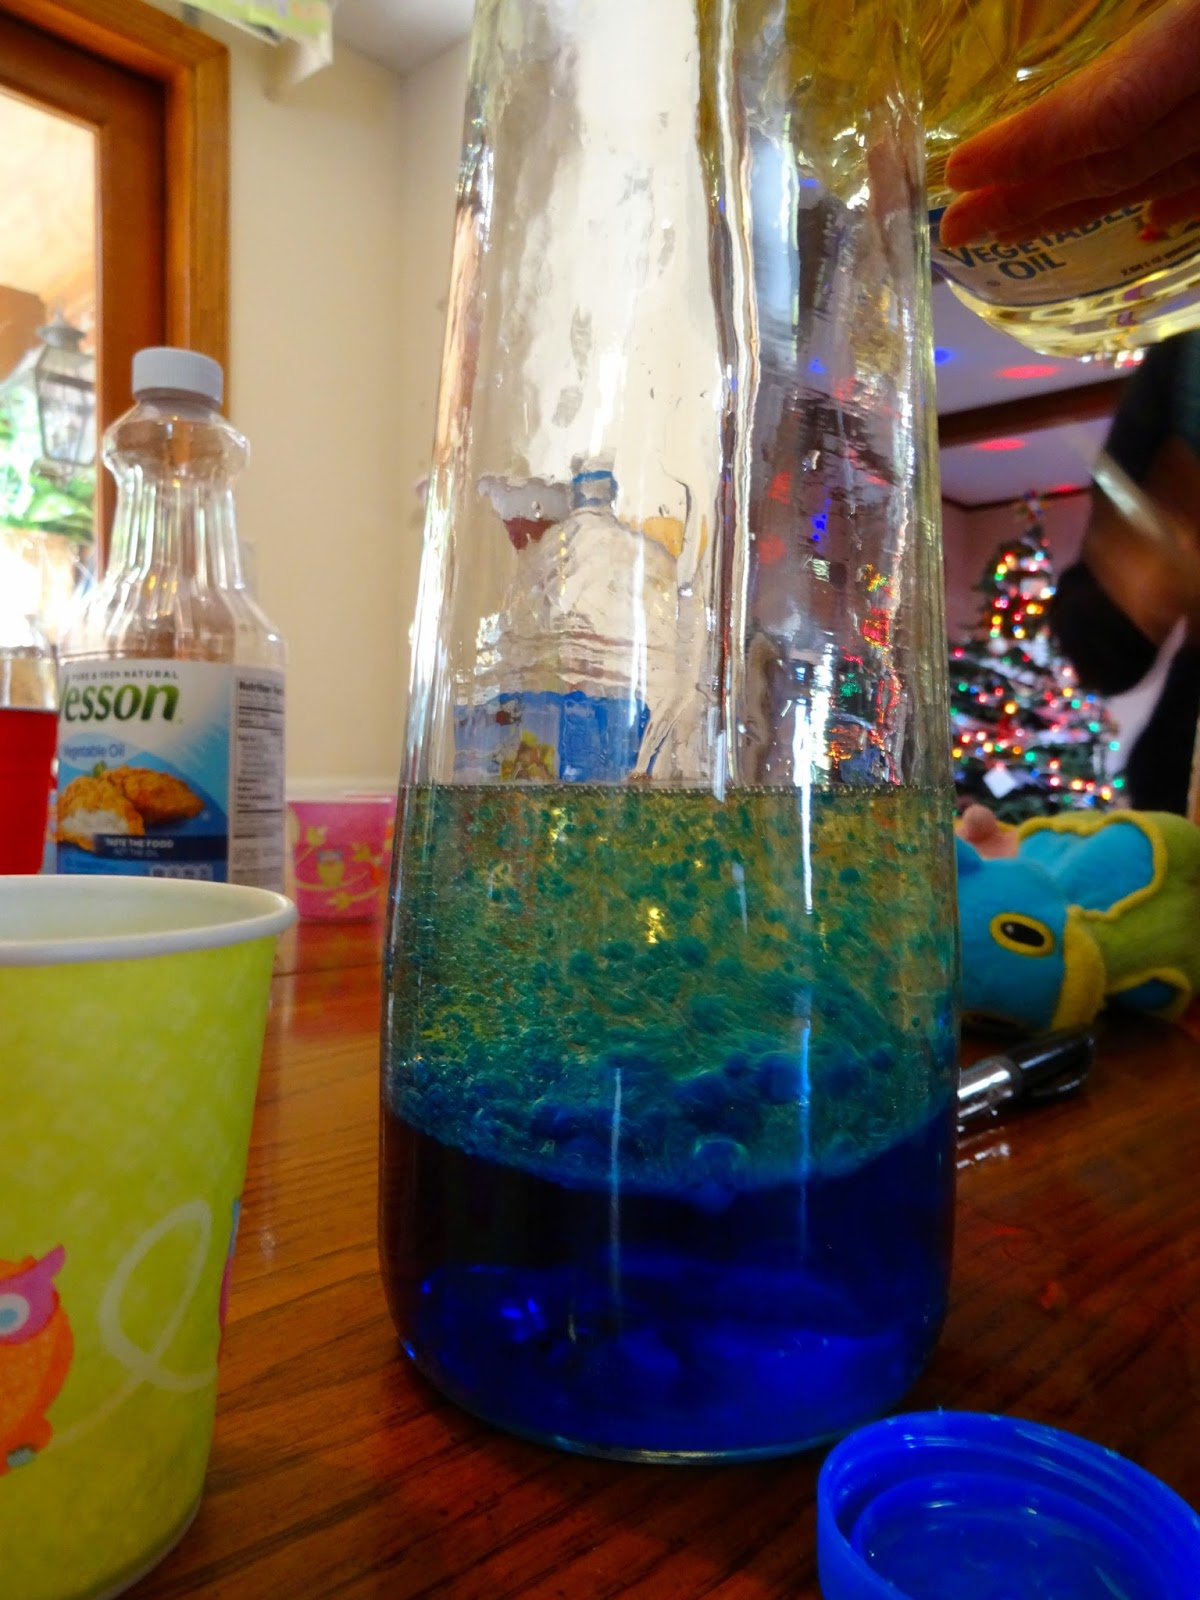 Pour The Water Into The Bottle. We Prefer Glass Over A Plastic Soda Bottle  Because Although You Have To Be More Careful With The Glass Bottle, An  Accidental ...